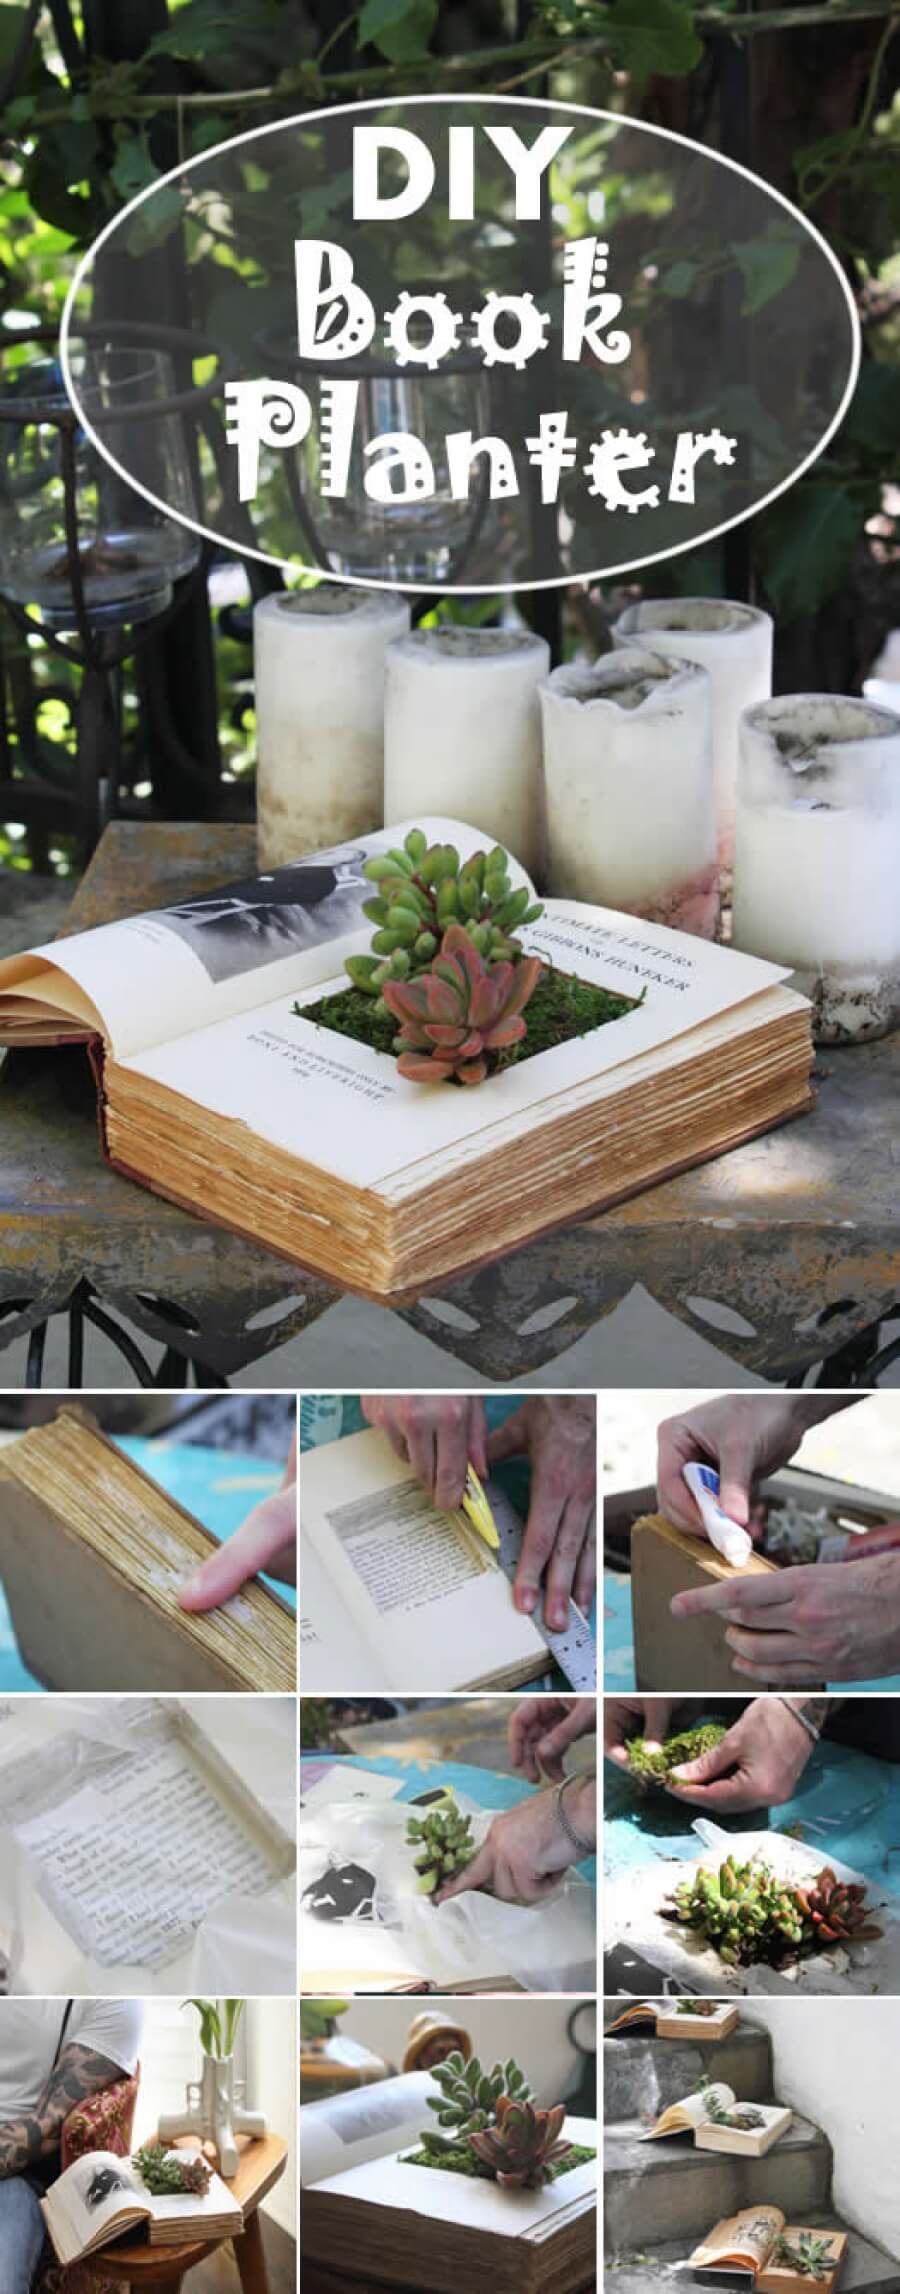 14 Unique DIY Project Ideas to Repurpose Old Books